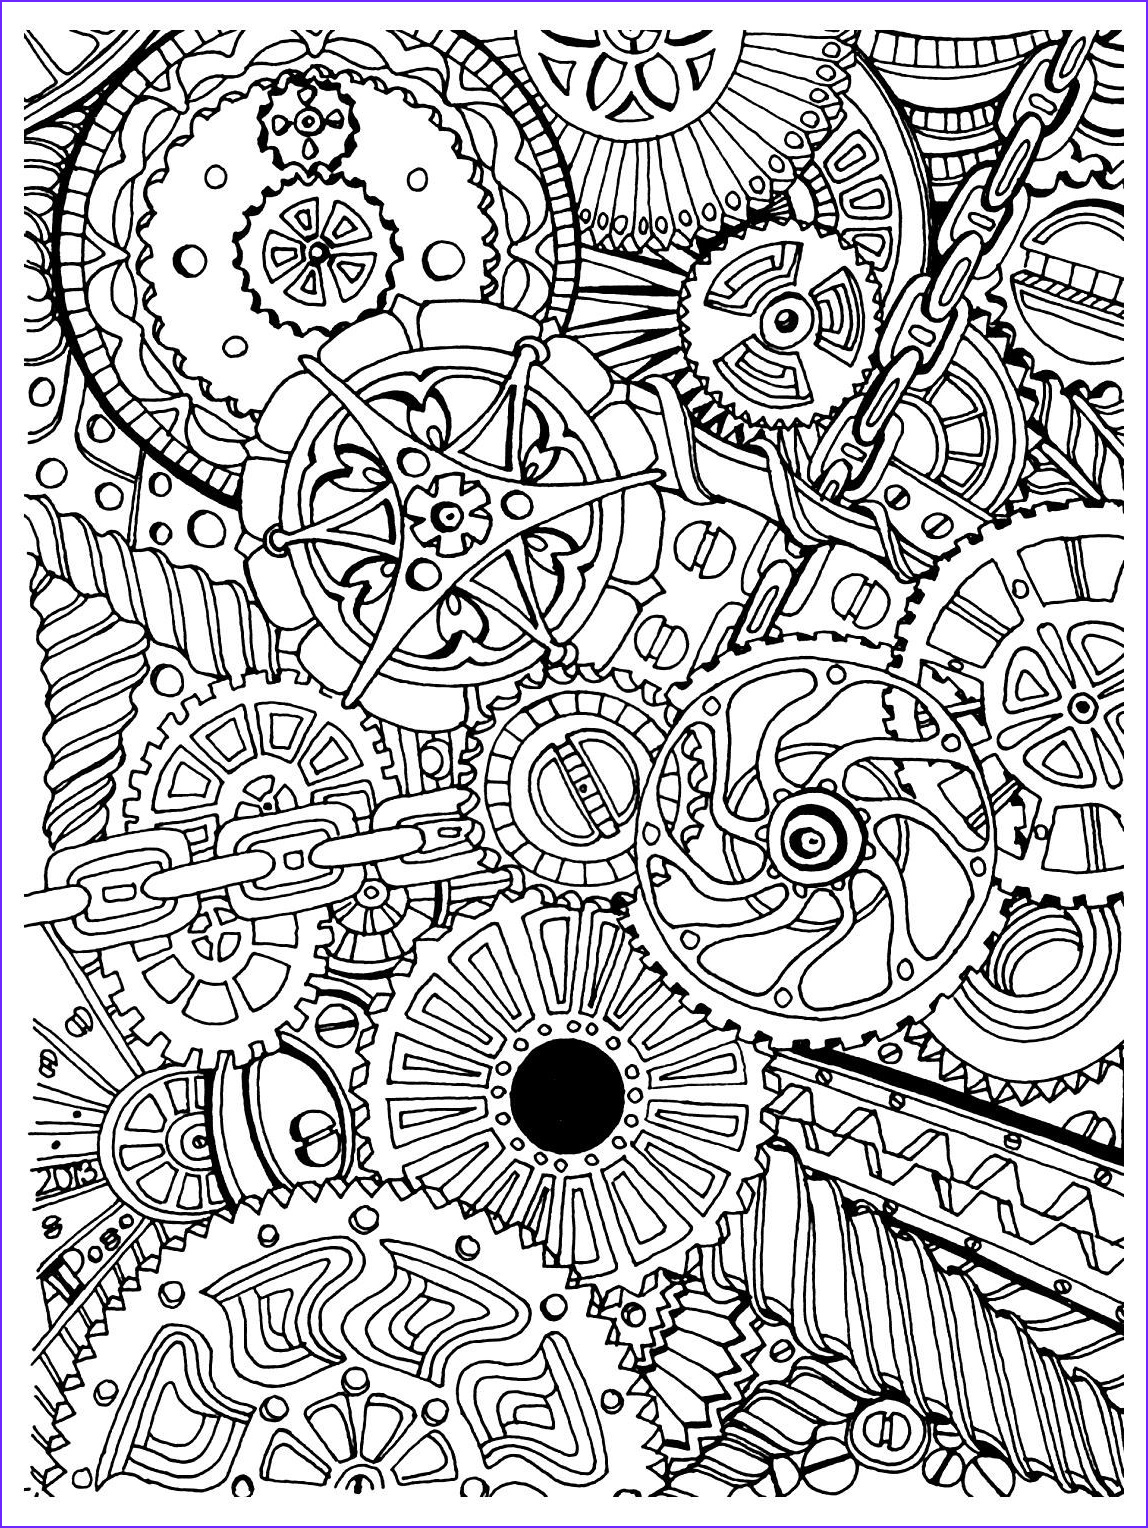 Stress Free Coloring Book Cool Gallery To Print This Free Coloring Page Coloring Adult Zen Anti